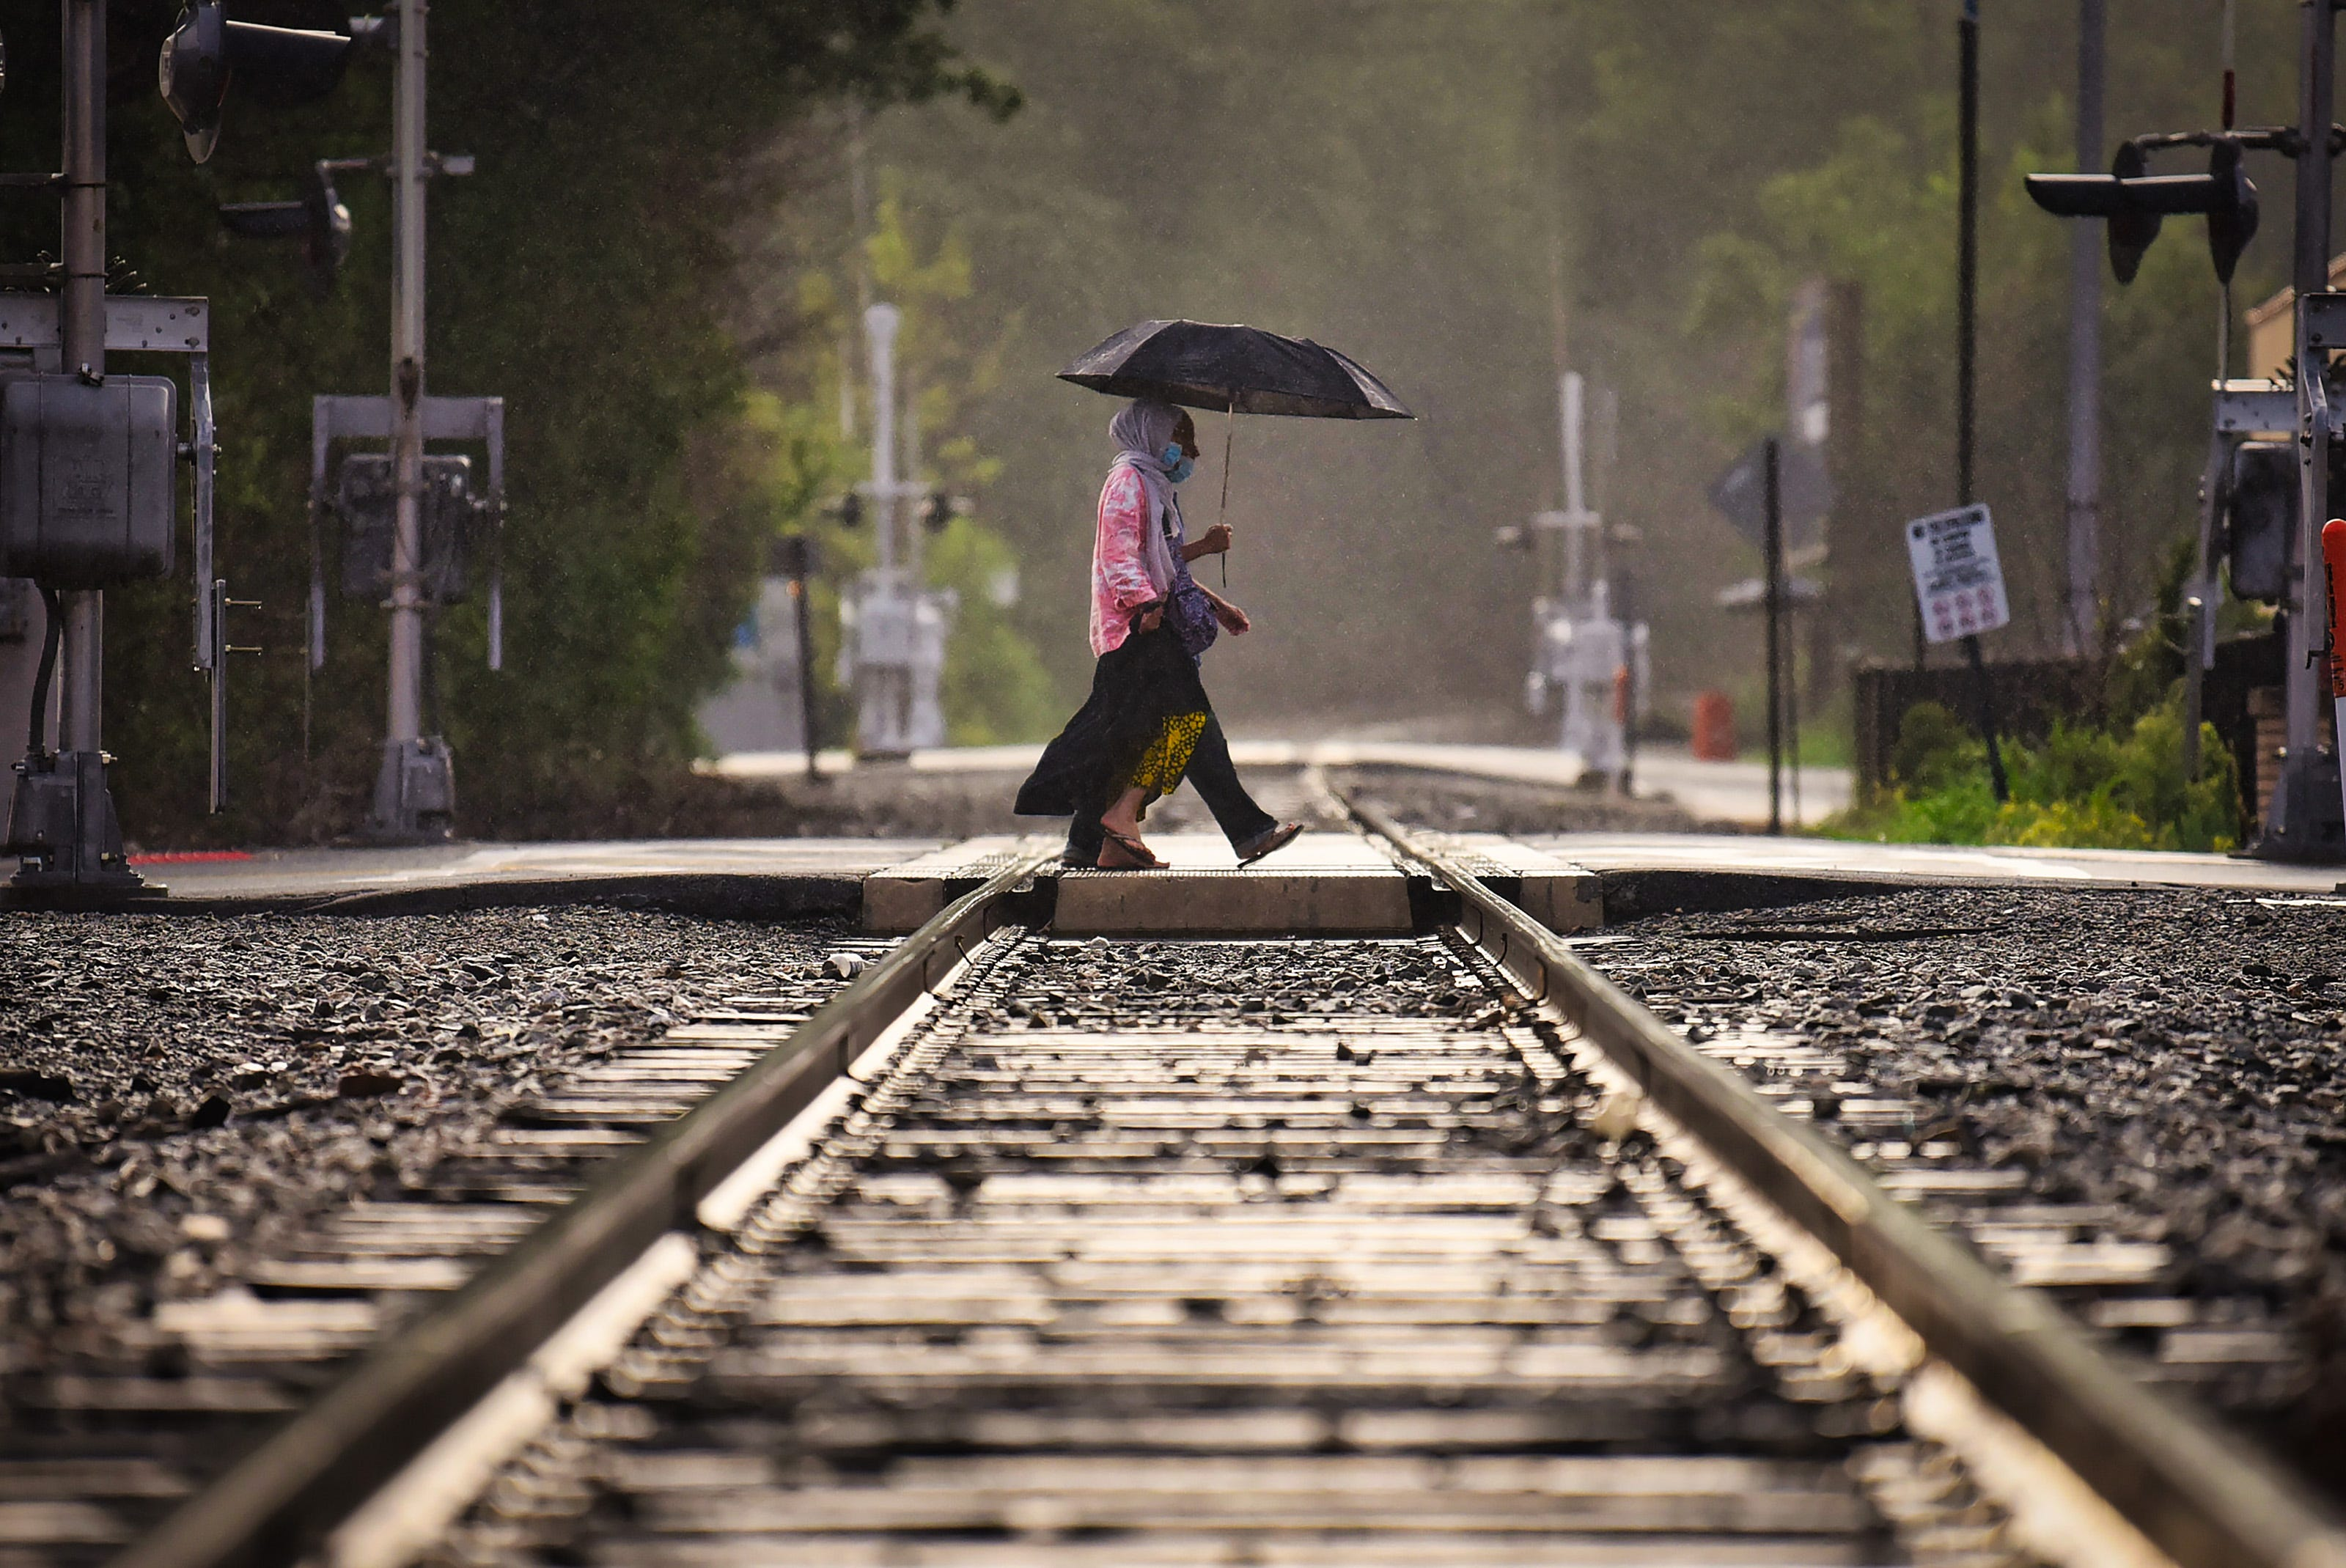 As light rain falls, two pedestrians with an umbrella cross the railroad tracks near the corner of Mercer and State streets in Hackensack on 08/08/21.